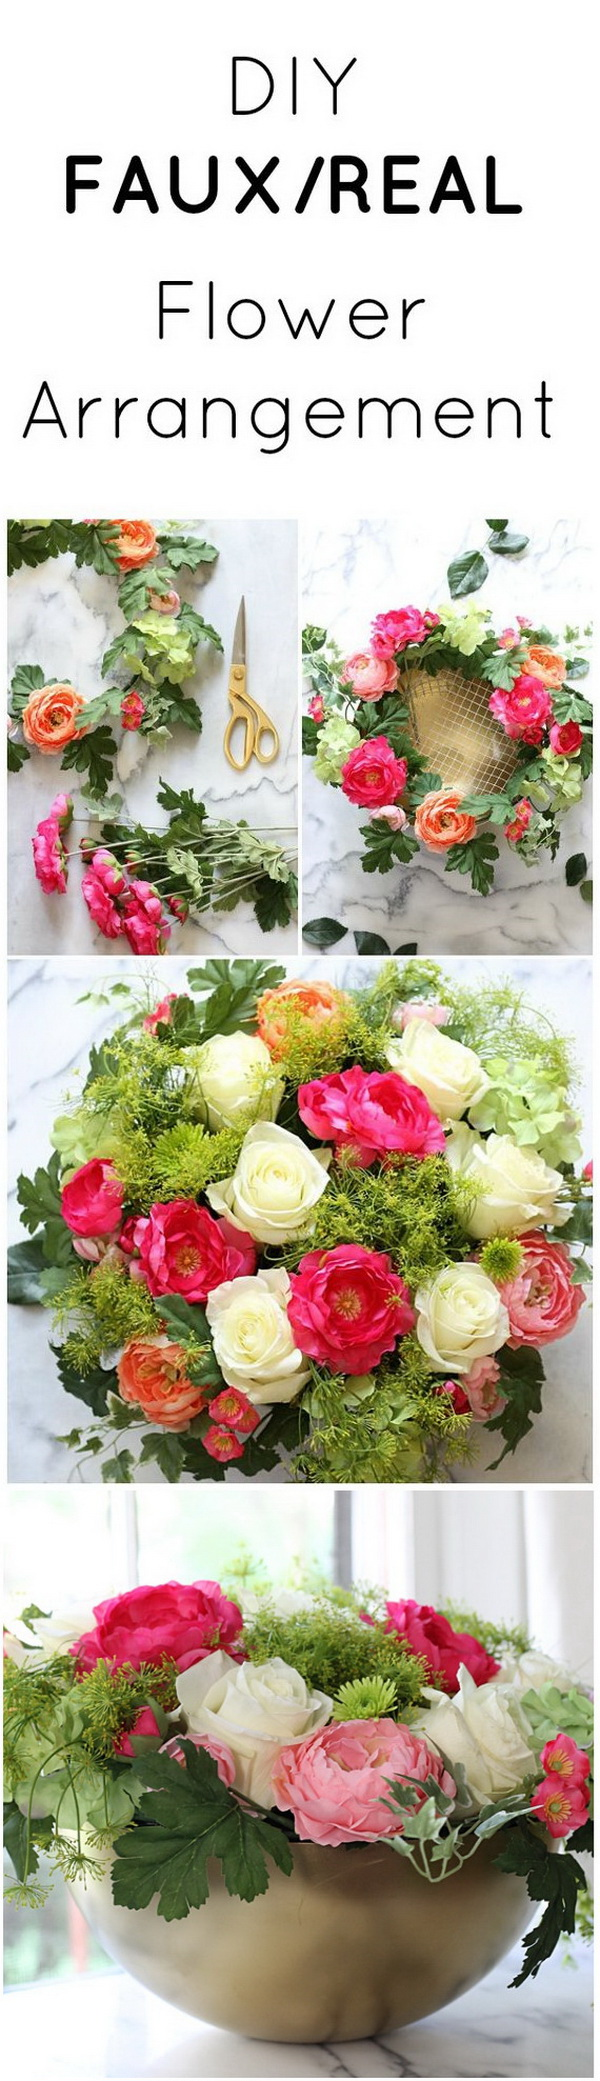 IKEA Hack: Faux/Real Flower Arrangement. Create a combo real/faux flower arrangement centerpiece using chicken wire. Inexpensive yet beautiful!